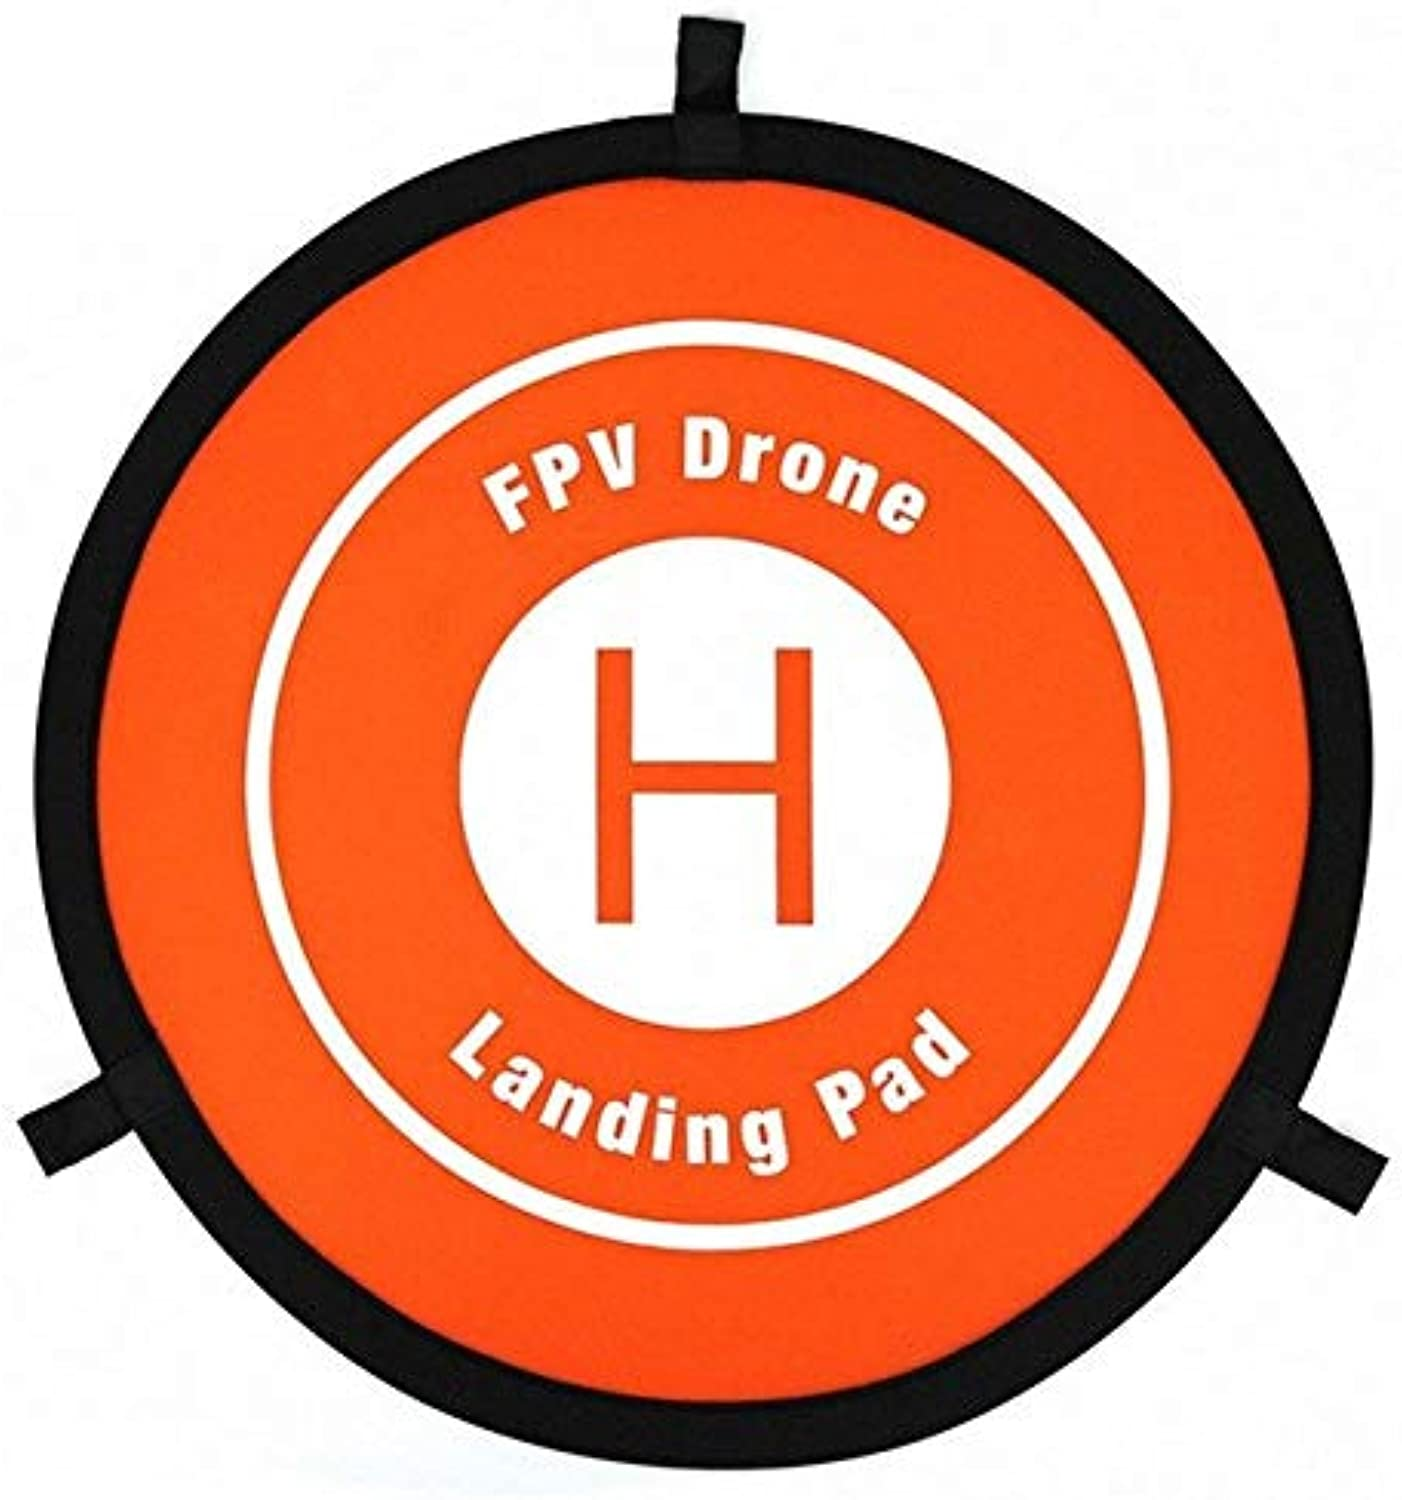 55cm Portable Parking Apron Drone General Coordinate Plate Landing Pad for X183 W198 Remote Controlled Aircraft Aerocraft   orange